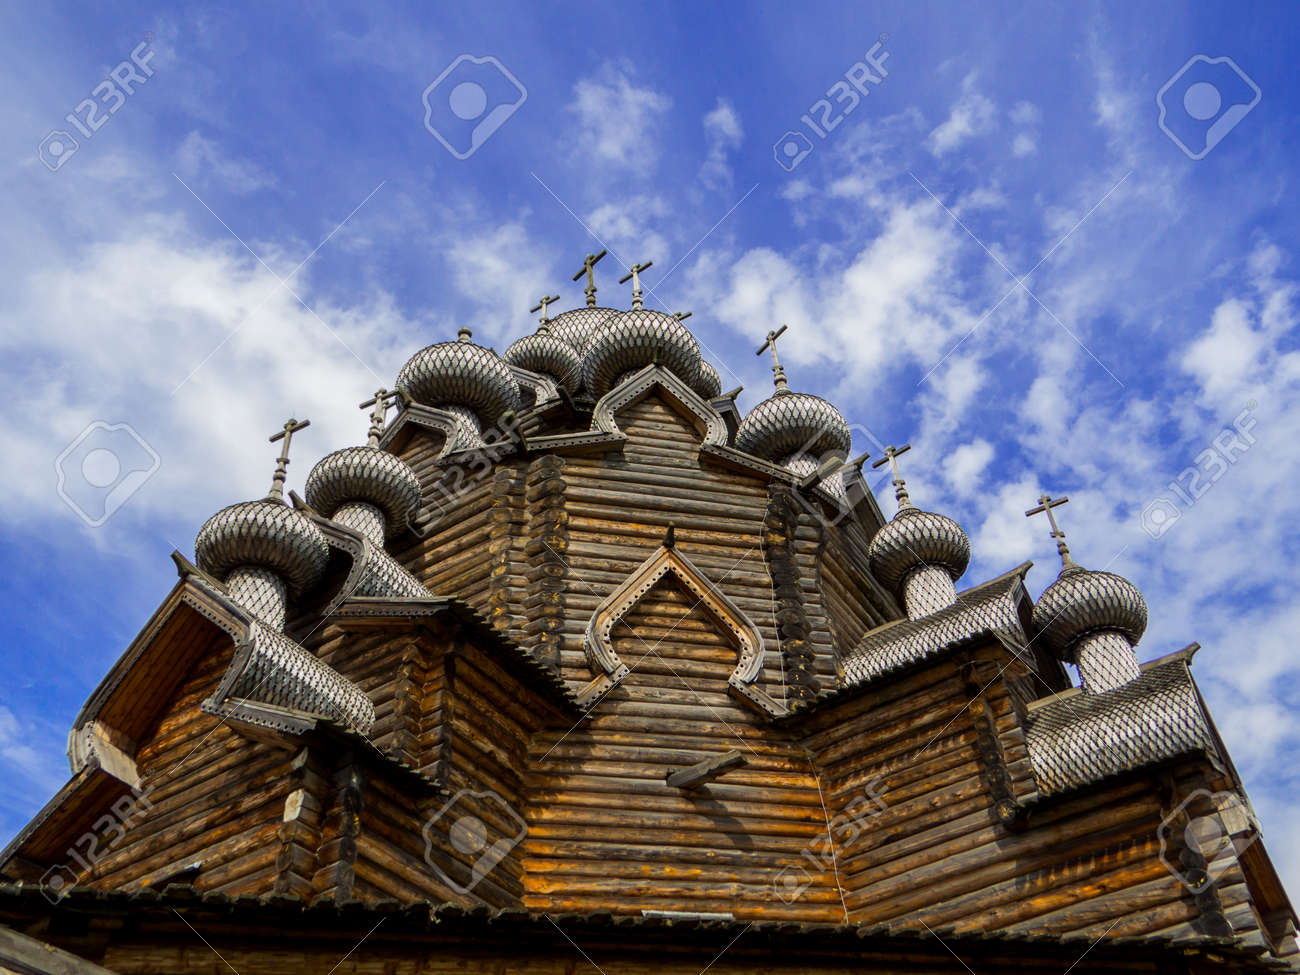 View of the wooden Church of the Intercession of the Holy Virgin in St. Petersburg, Russia - 151391706